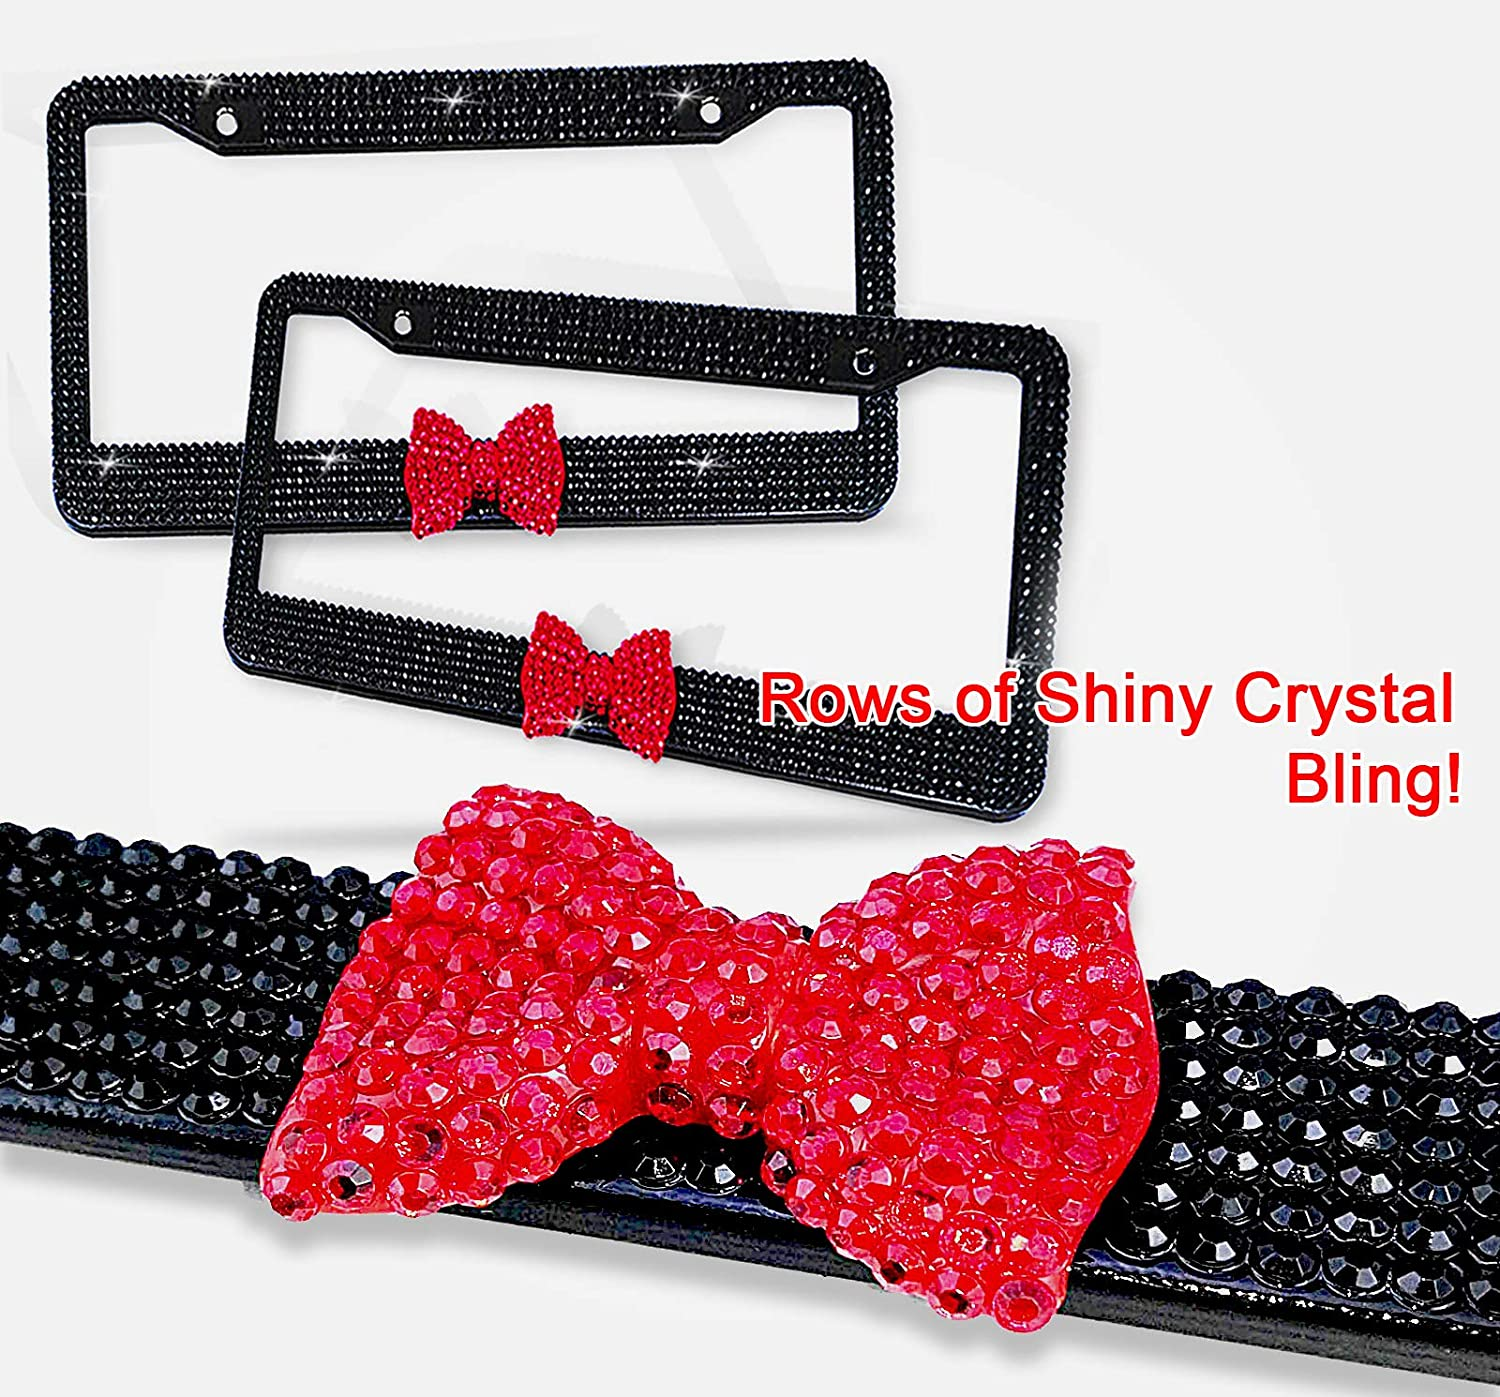 1 Frame Fashion Purely Handmade Gradient Purple Bow Design Bling Crystal License Plate Frame Rhinestone Car//Truck//SUV License Plate Cover Holder for Women,Girl,Lady